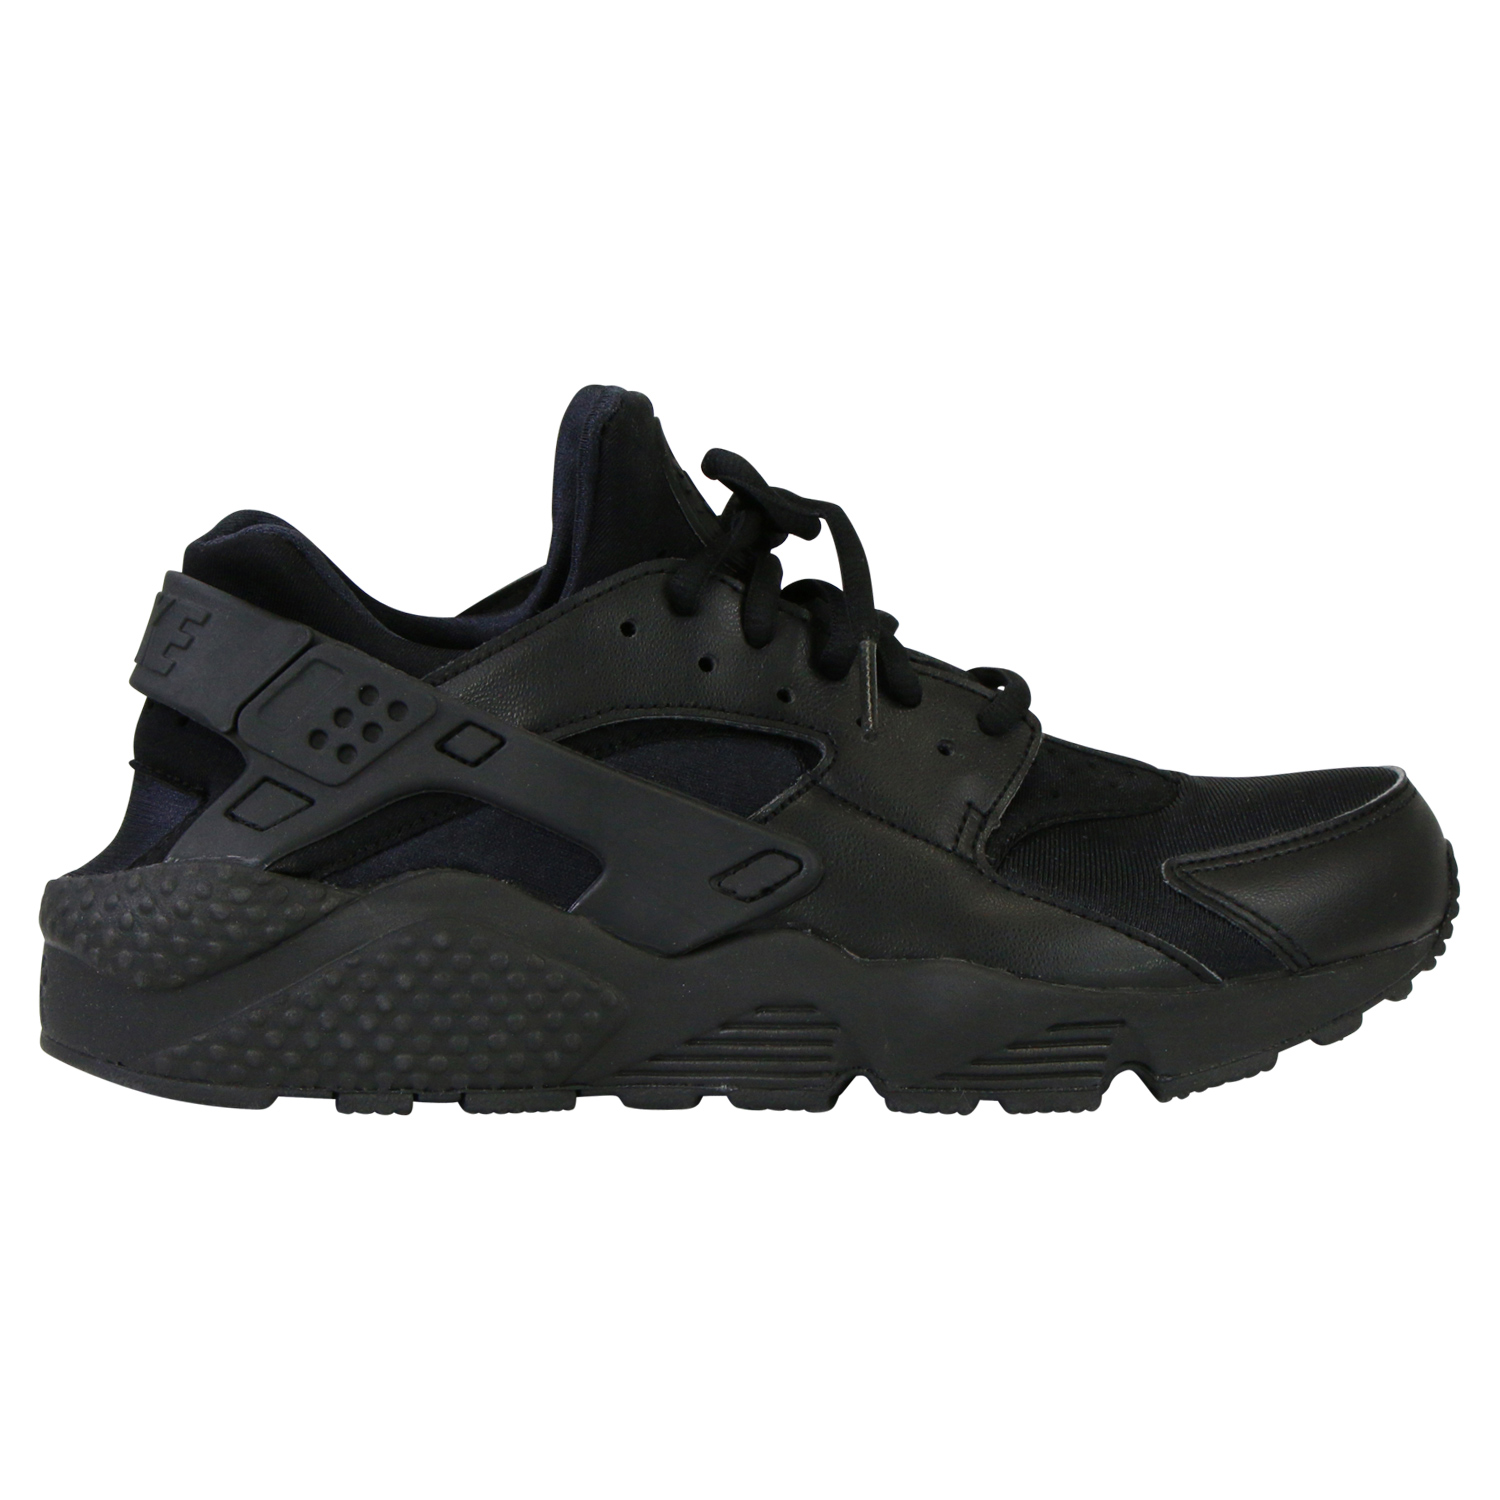 nike air huarache schuhe turnschuhe sneaker damen wei. Black Bedroom Furniture Sets. Home Design Ideas